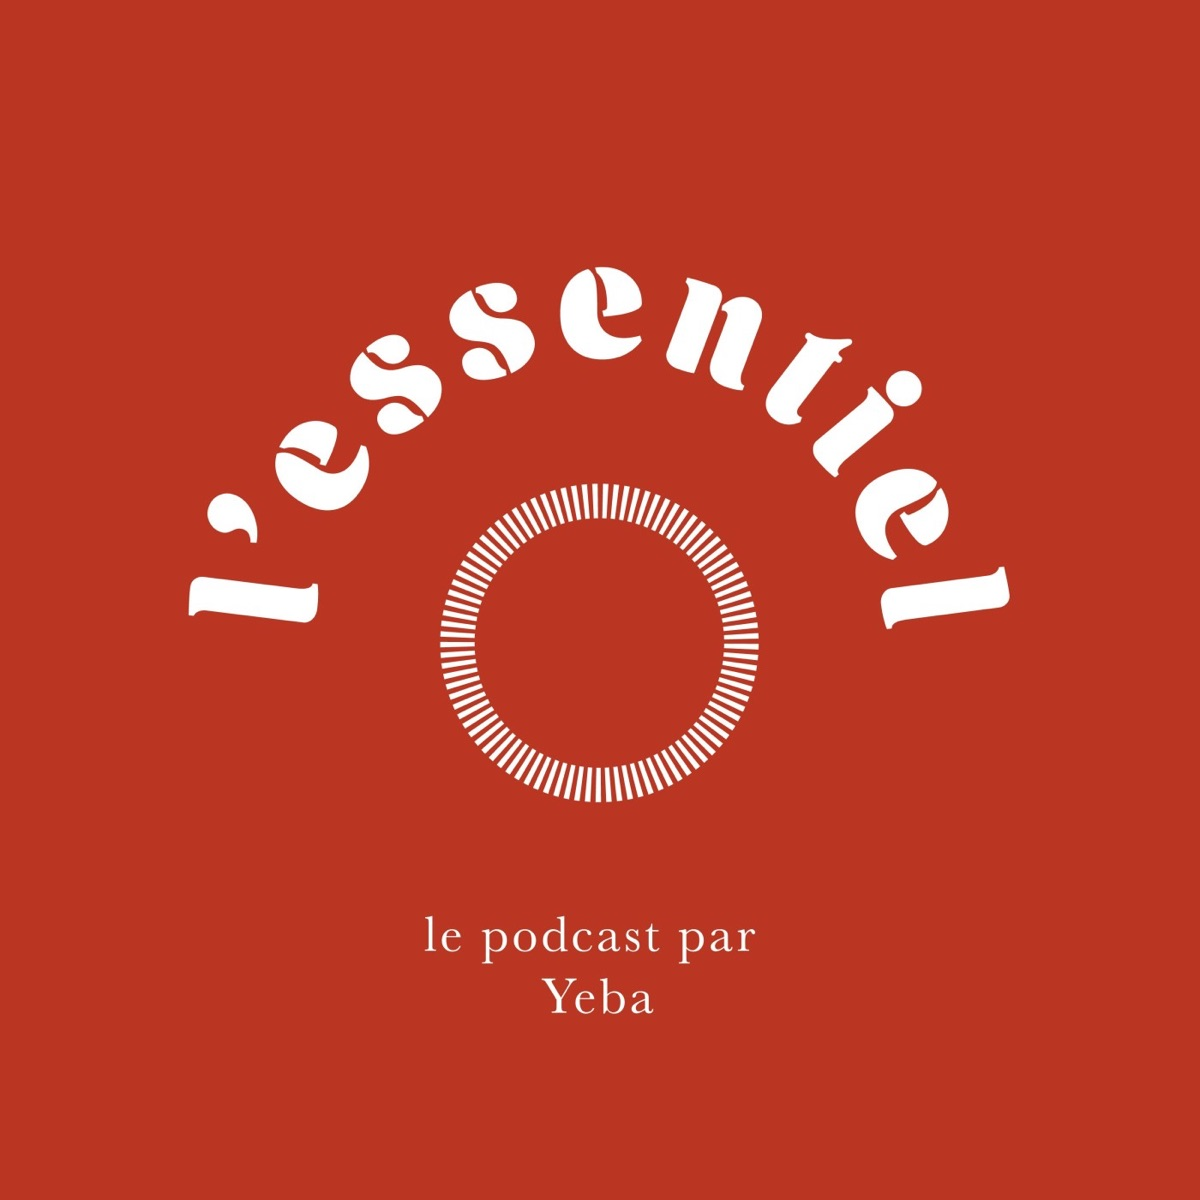 L'essentiel, le podcast par Yeba